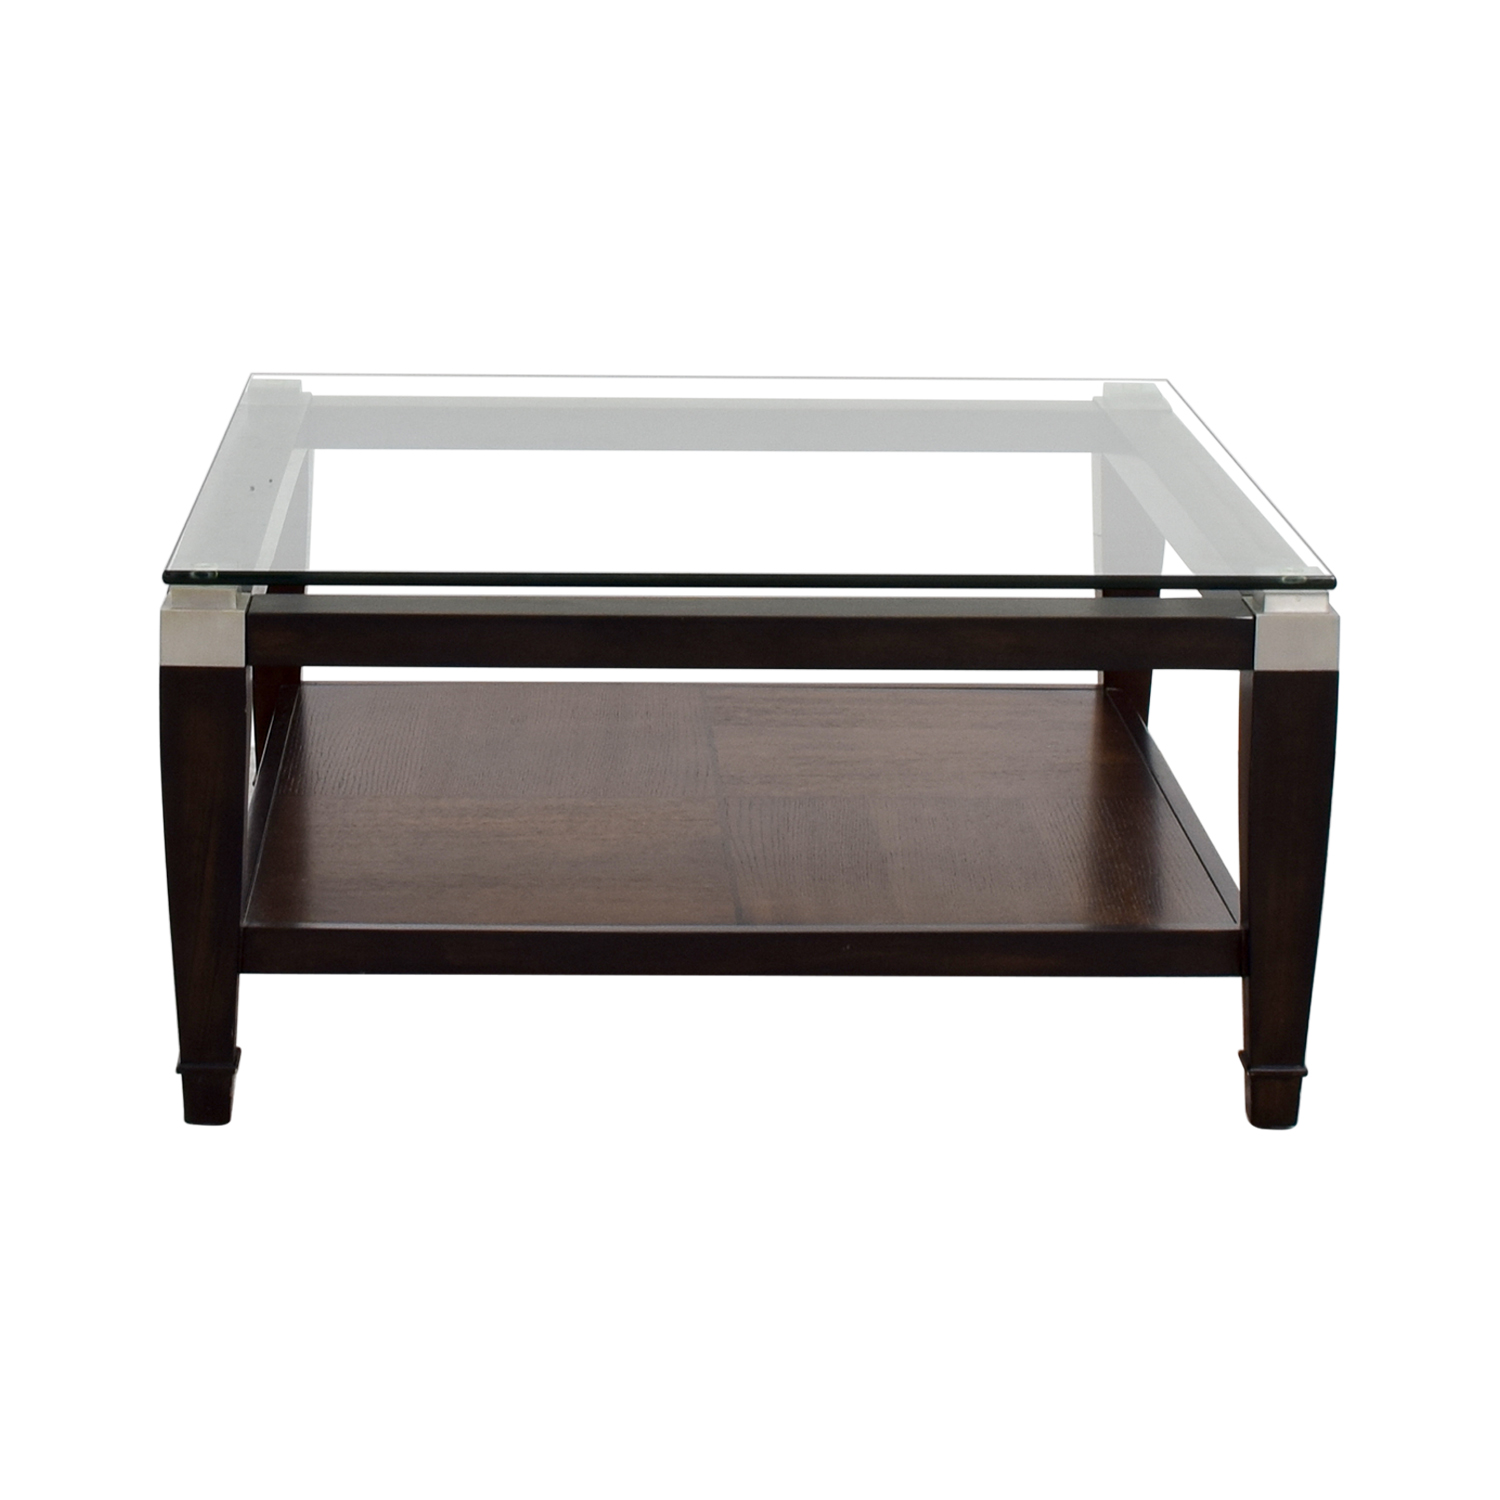 Raymour and Flanigan Raymour & Flanigan Wood and Glass Coffee Table on sale